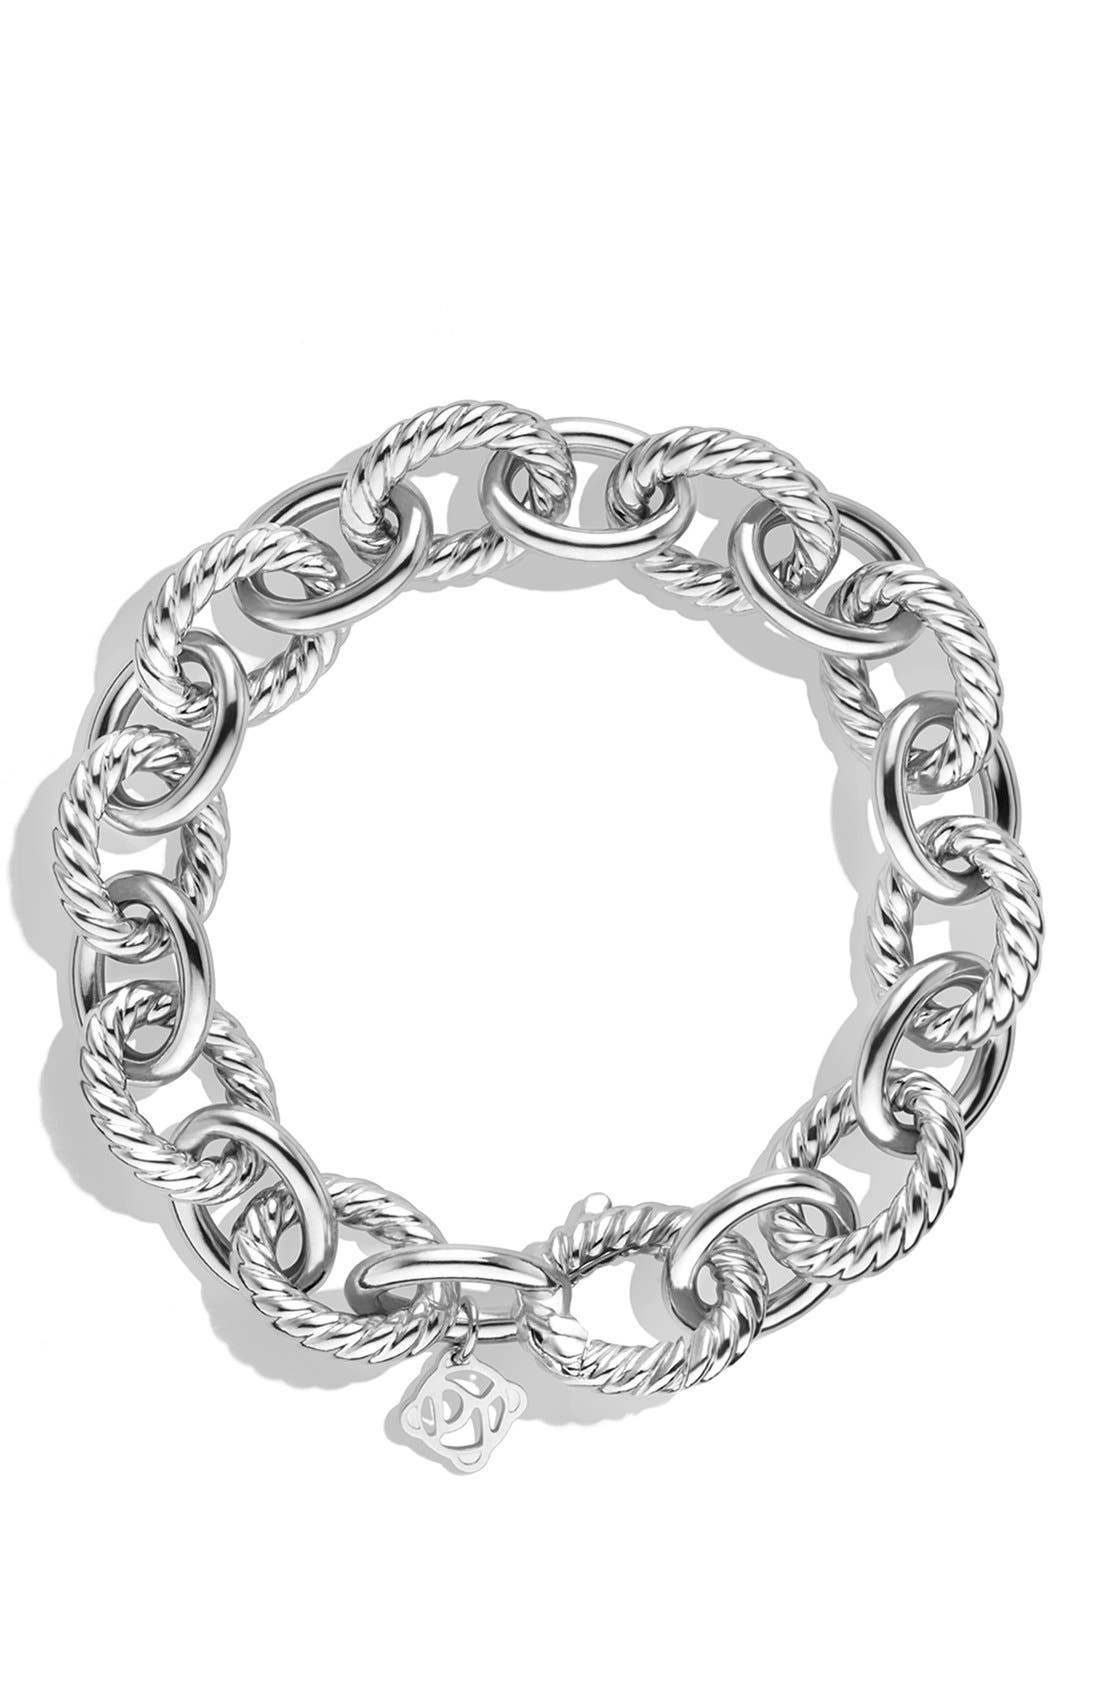 Alternate Image 2  - David Yurman 'Oval' Large Link Bracelet